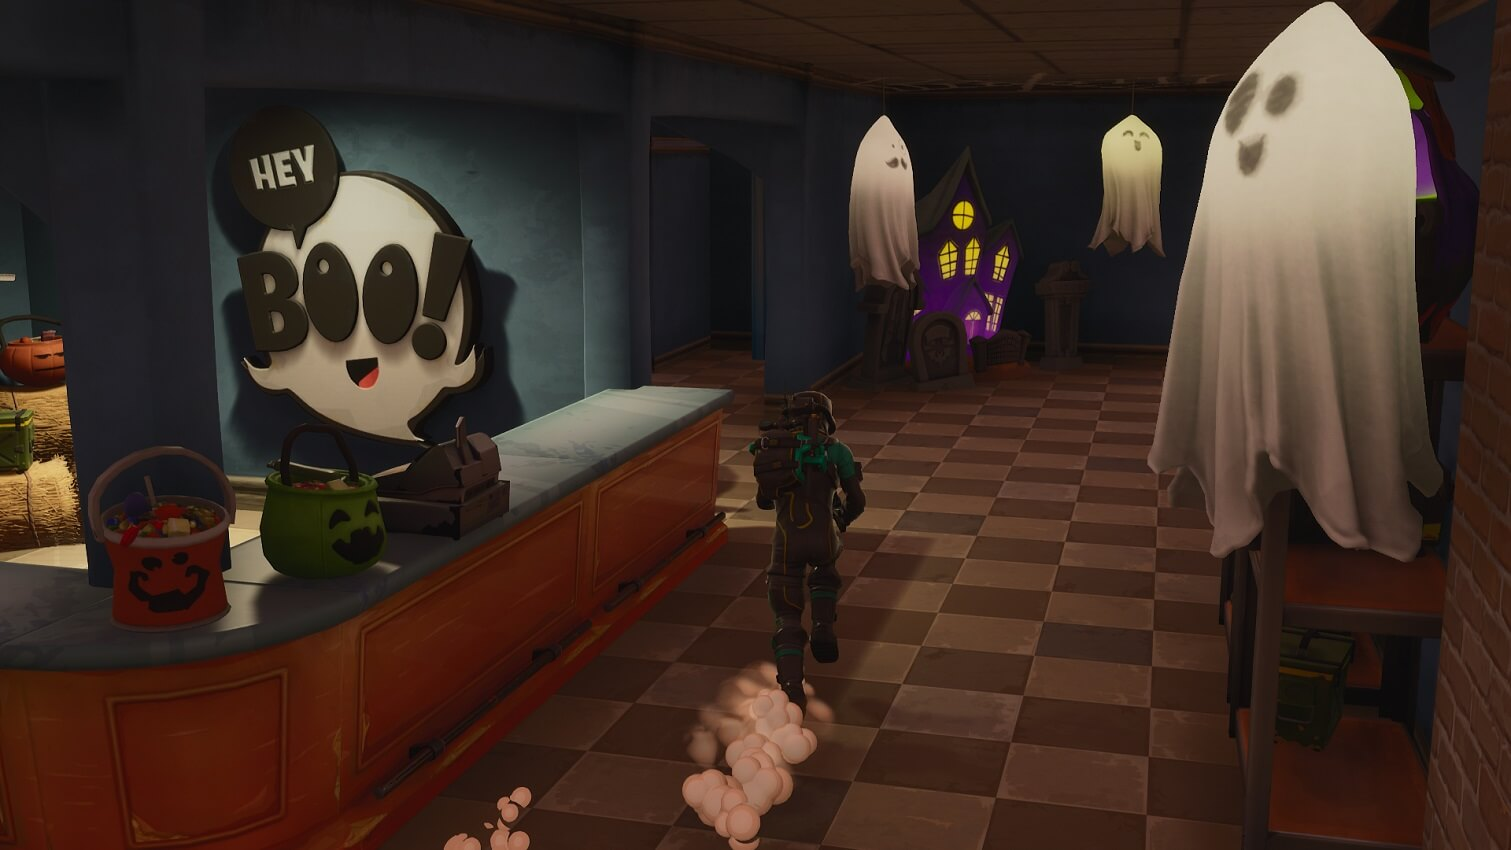 Fortnite Season 6 Gets Into The Halloween Spirit With Cute